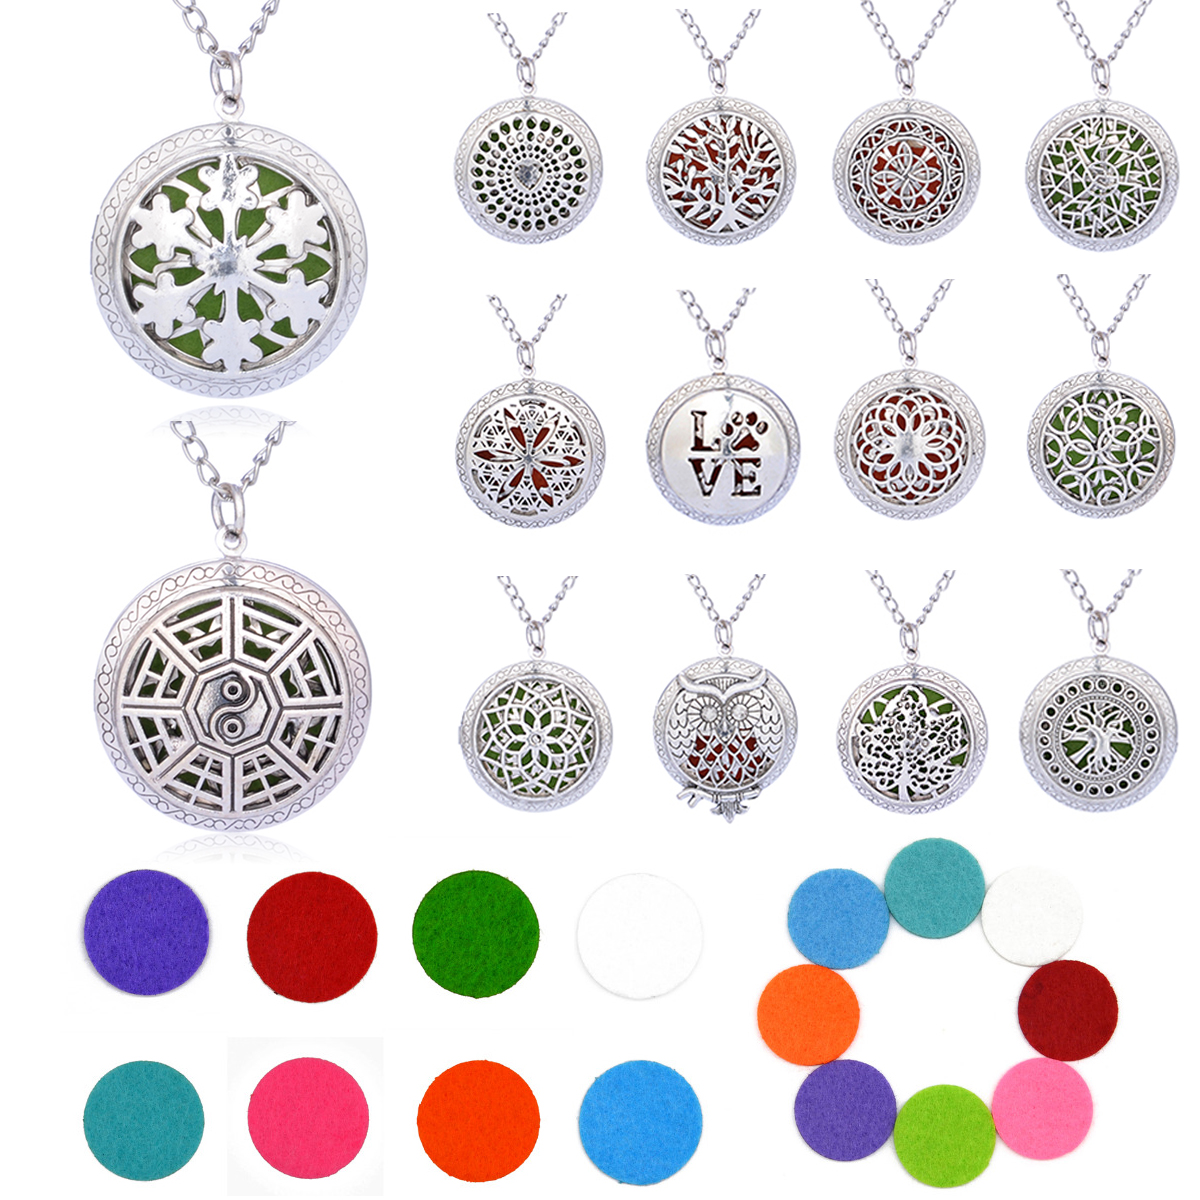 Summer Aroma Diffuser Necklace Open Vintage Silver Lockets Pendant Perfume Essential Oil Aromatherapy Locket Necklace With